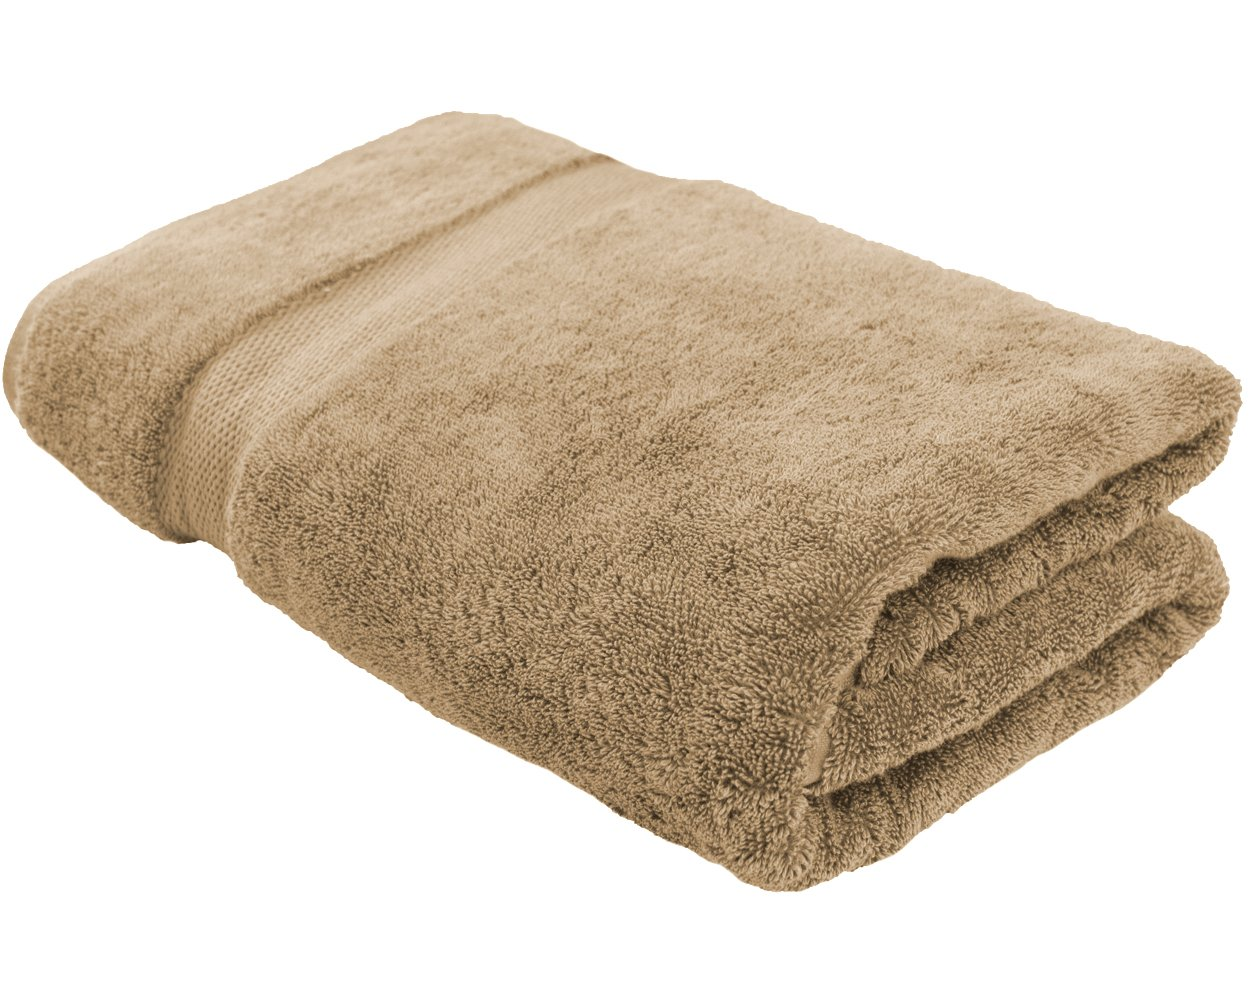 Cotton & Calm Exquisitely Plush and Soft Oversized Bathsheet Towel, Beige - 1 Extra Large Bath Towel (35x70) - Spa Resort and Hotel Quality, Super Absorbent 100% Cotton Luxury Bathroom Towels